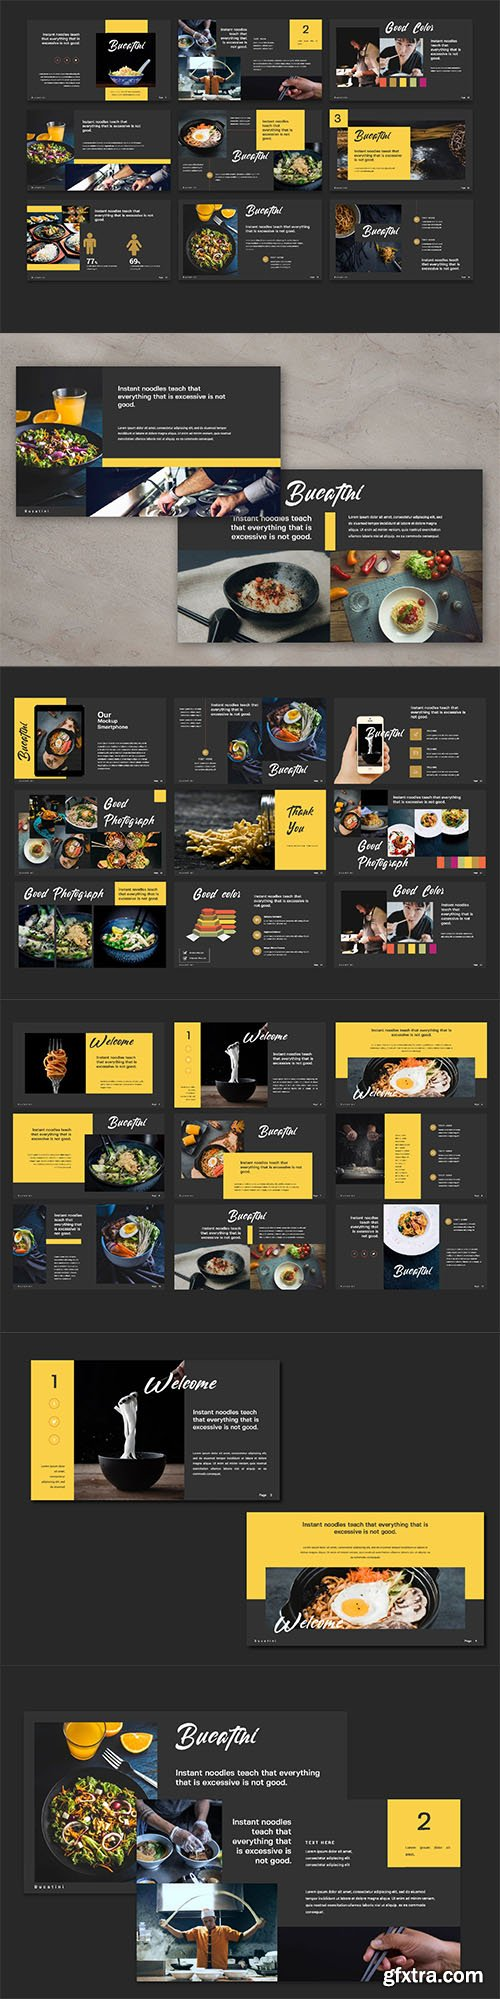 Bucatini Food Powerpoint and Keynote Presentation